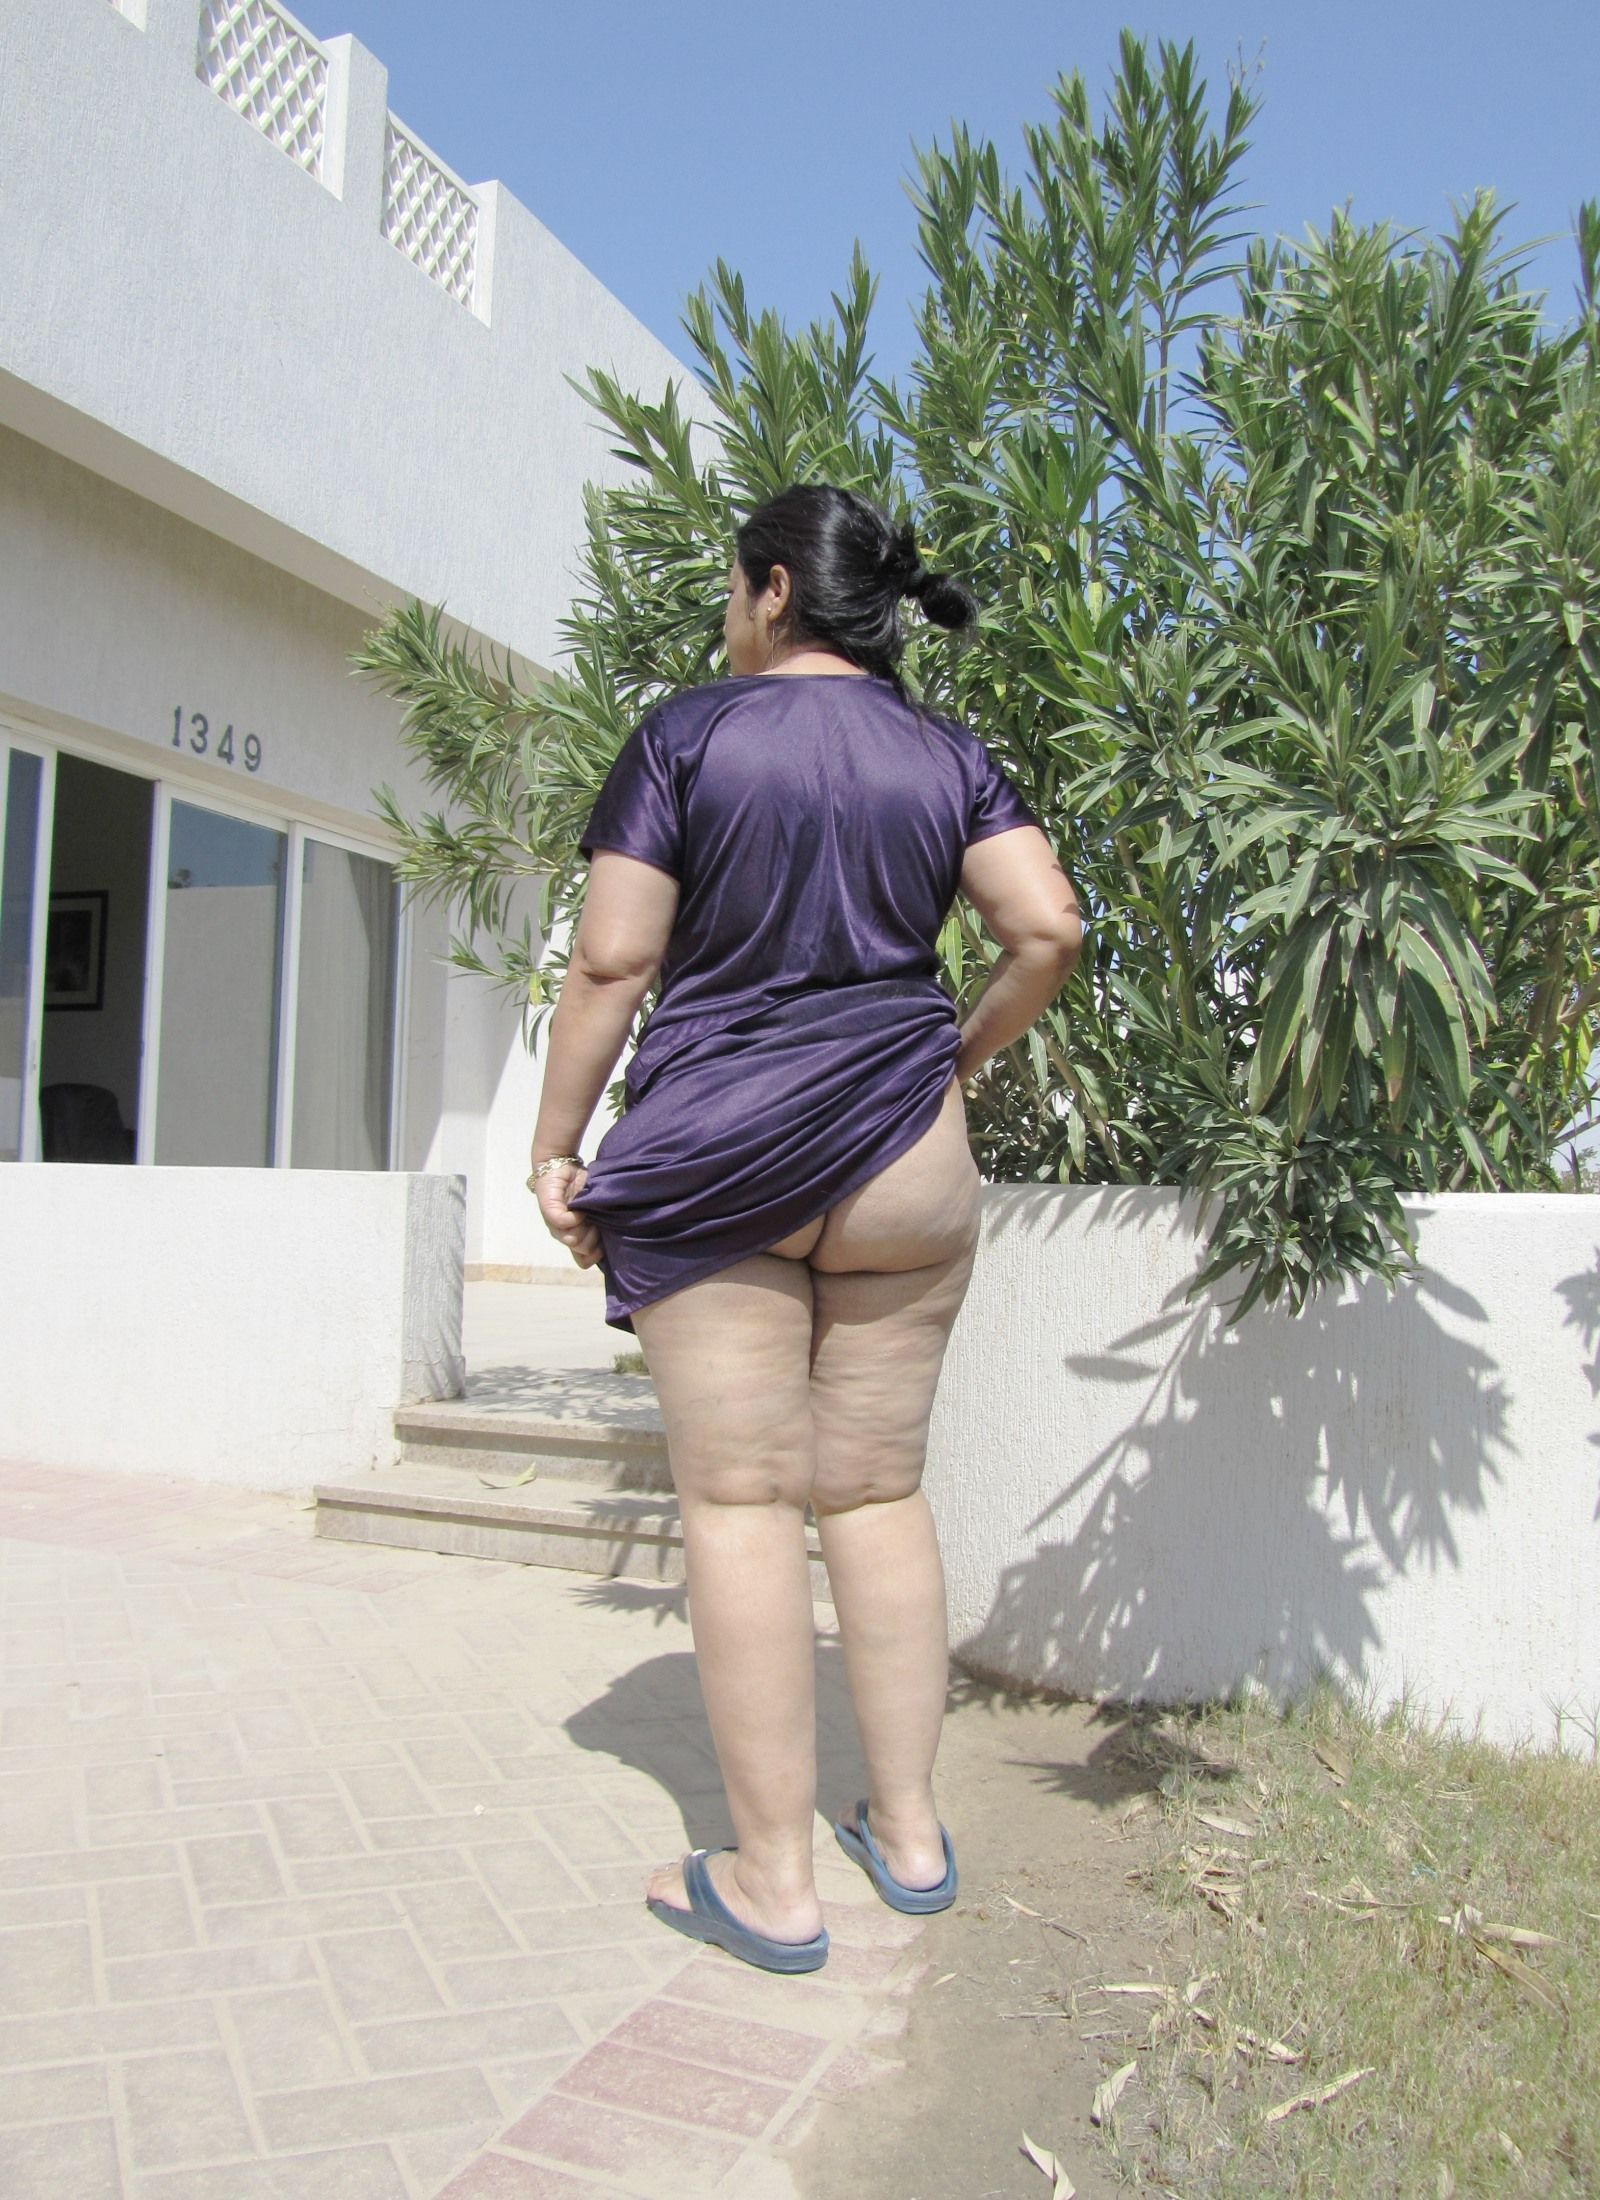 Desi gifs enjoy and comment page xossip